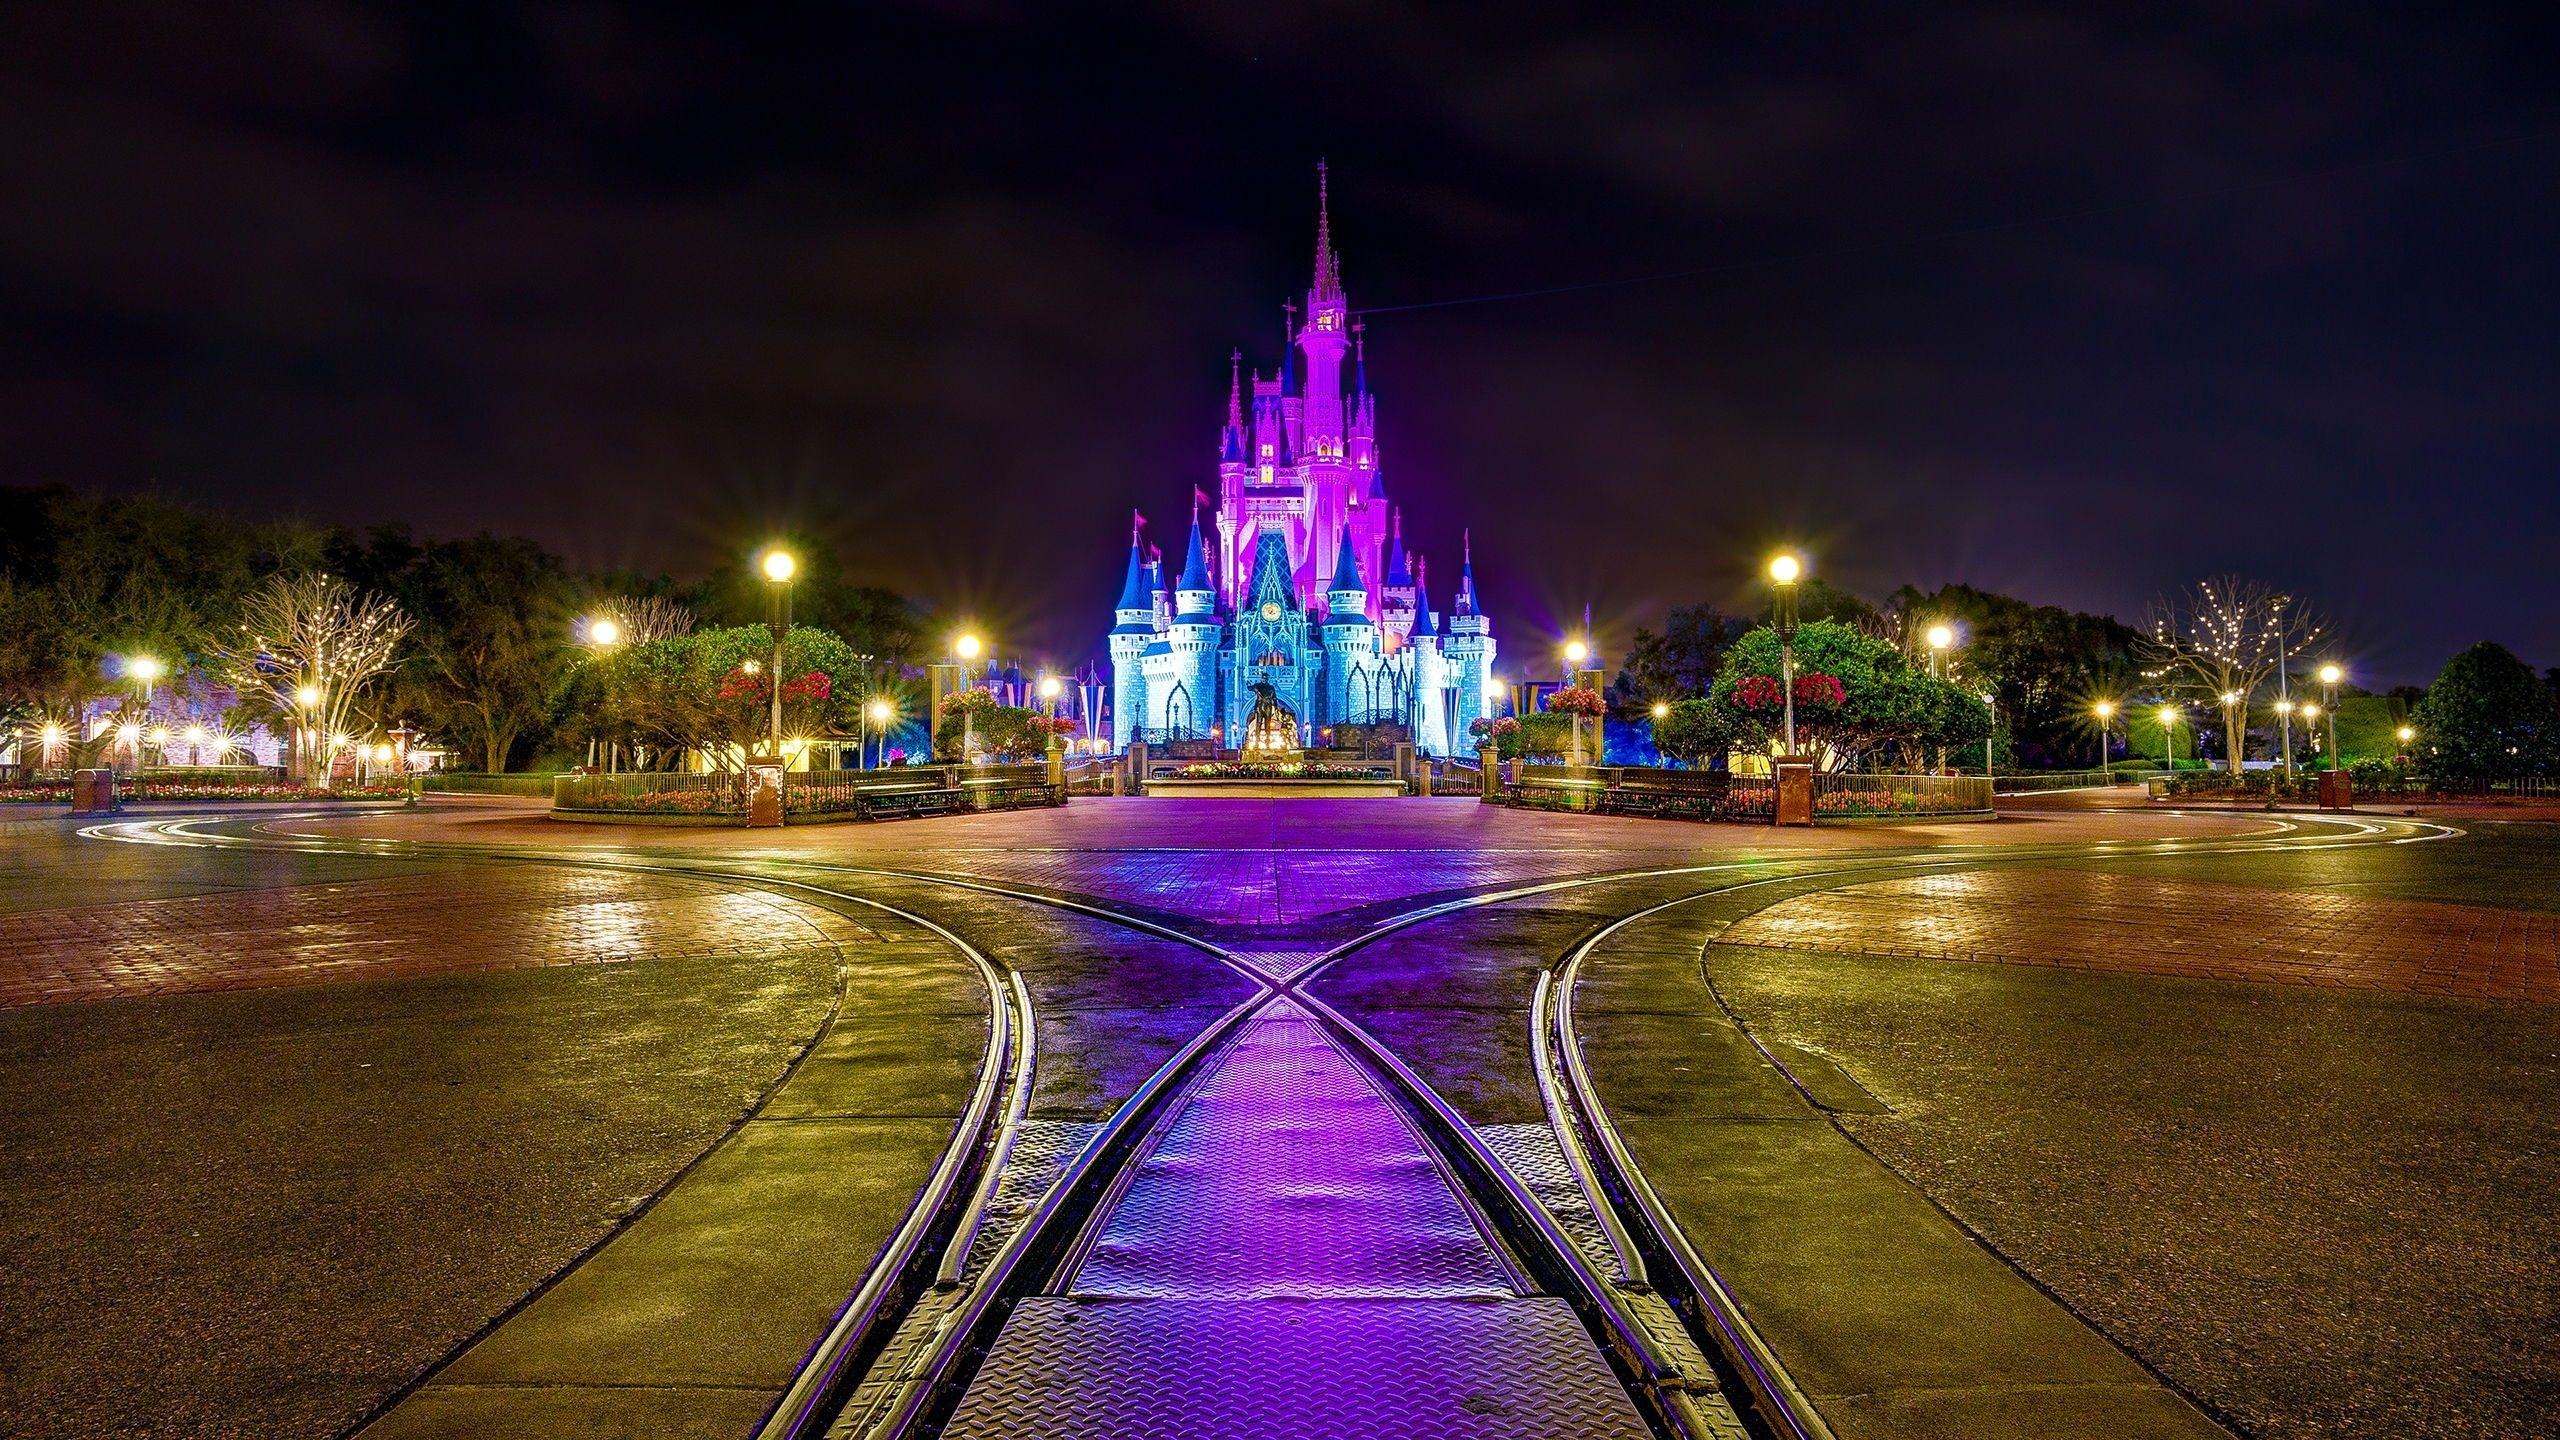 disney world hd wallpaper - 1342612